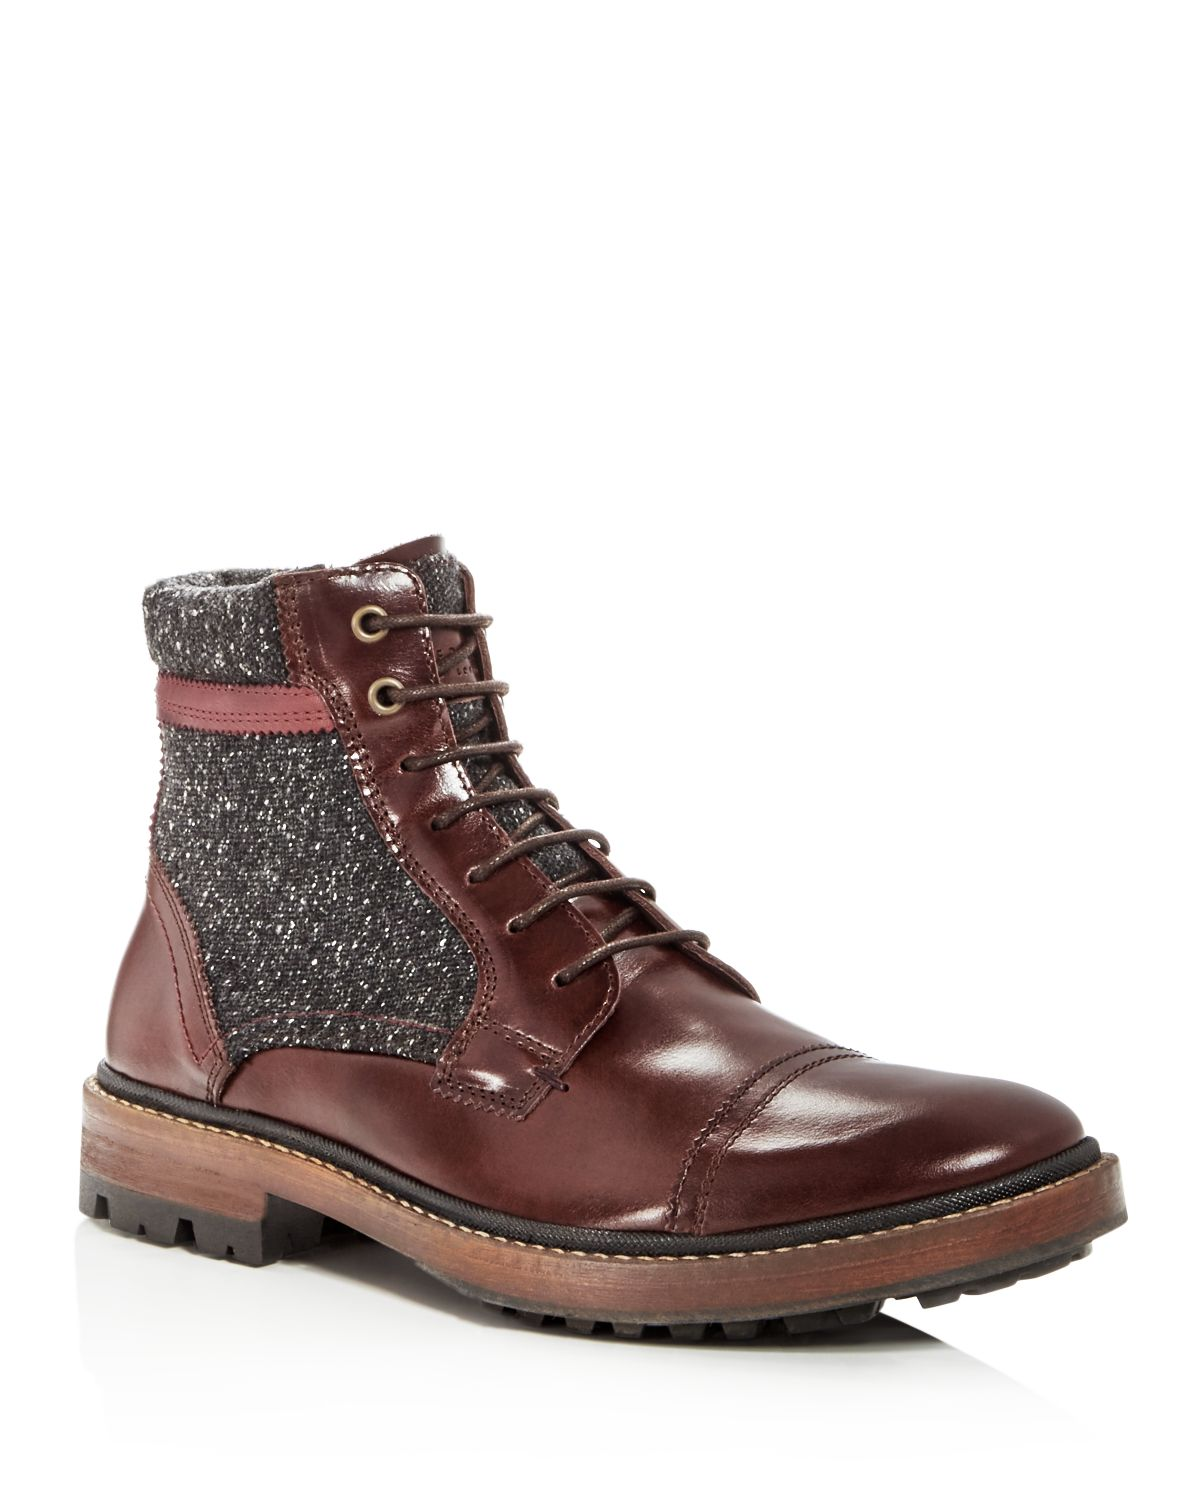 Ted Baker Men's Ruulen Leather Lace Up Boots